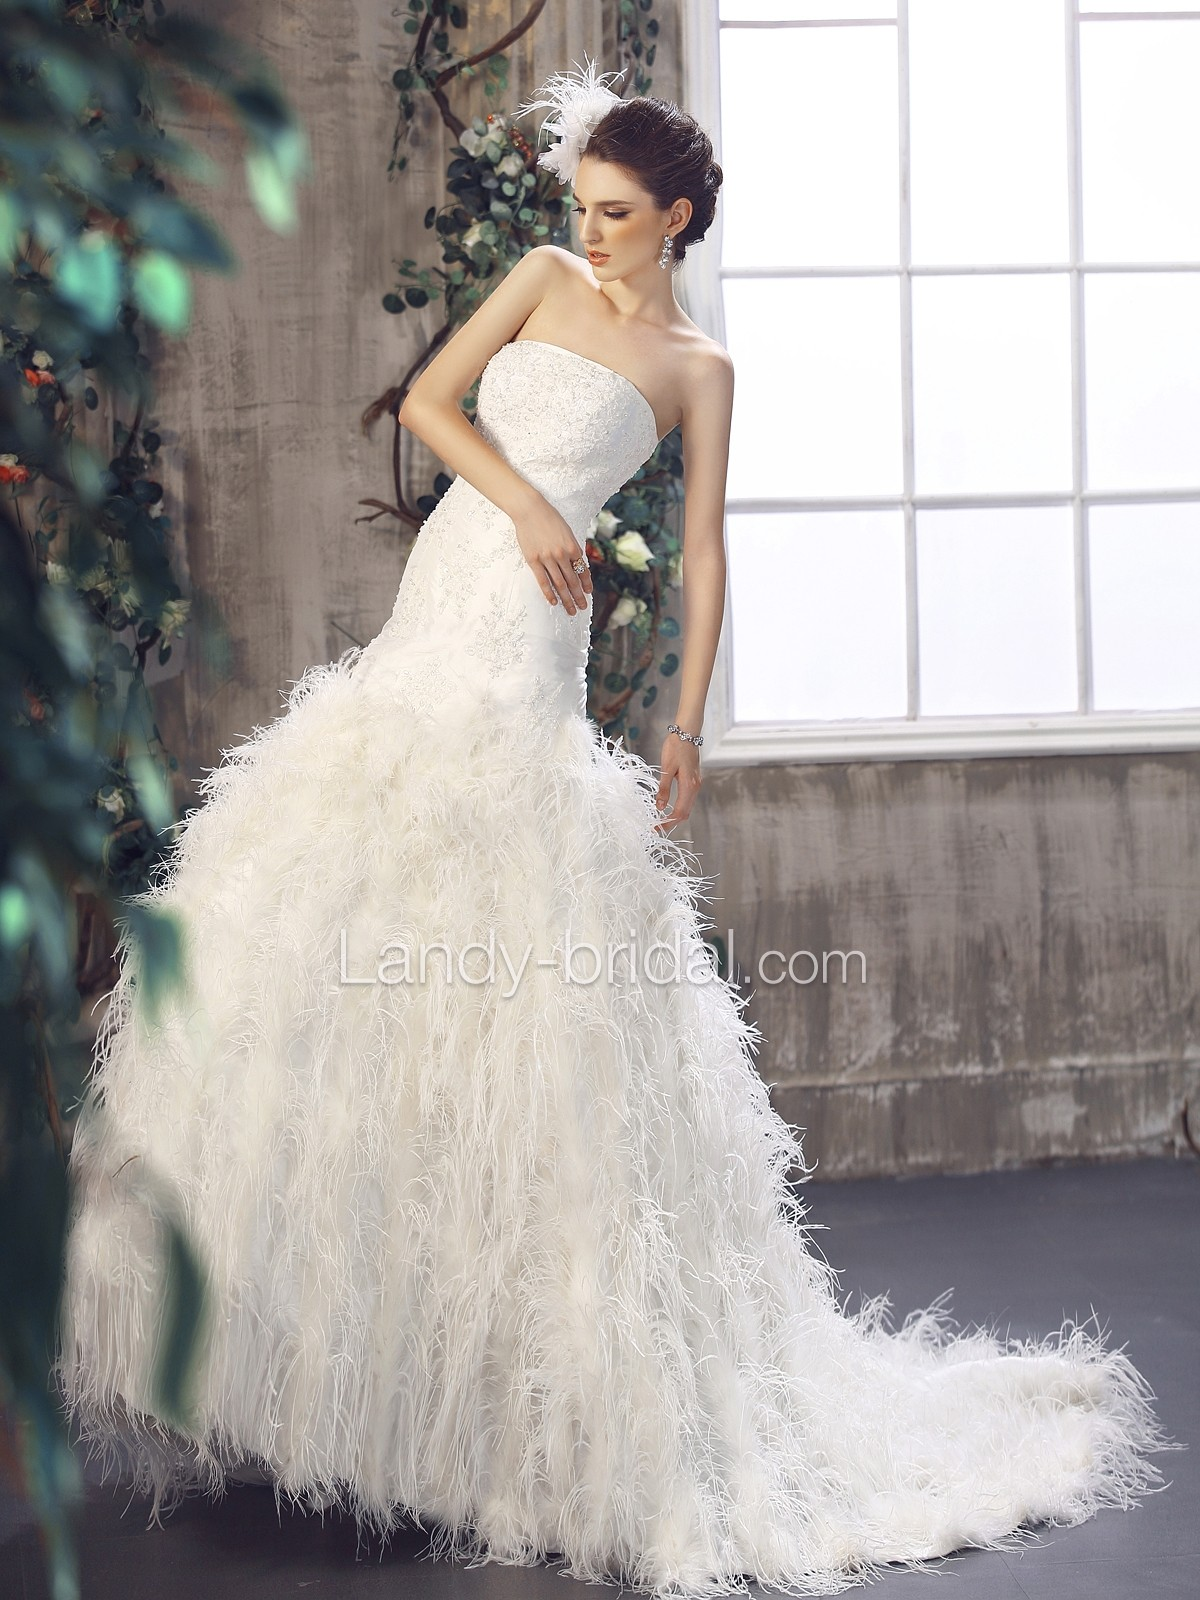 plus size party wedding dresses TS Couture Prom Formal Evening Wedding Party Dress Celebrity Style Vintage Inspired s A